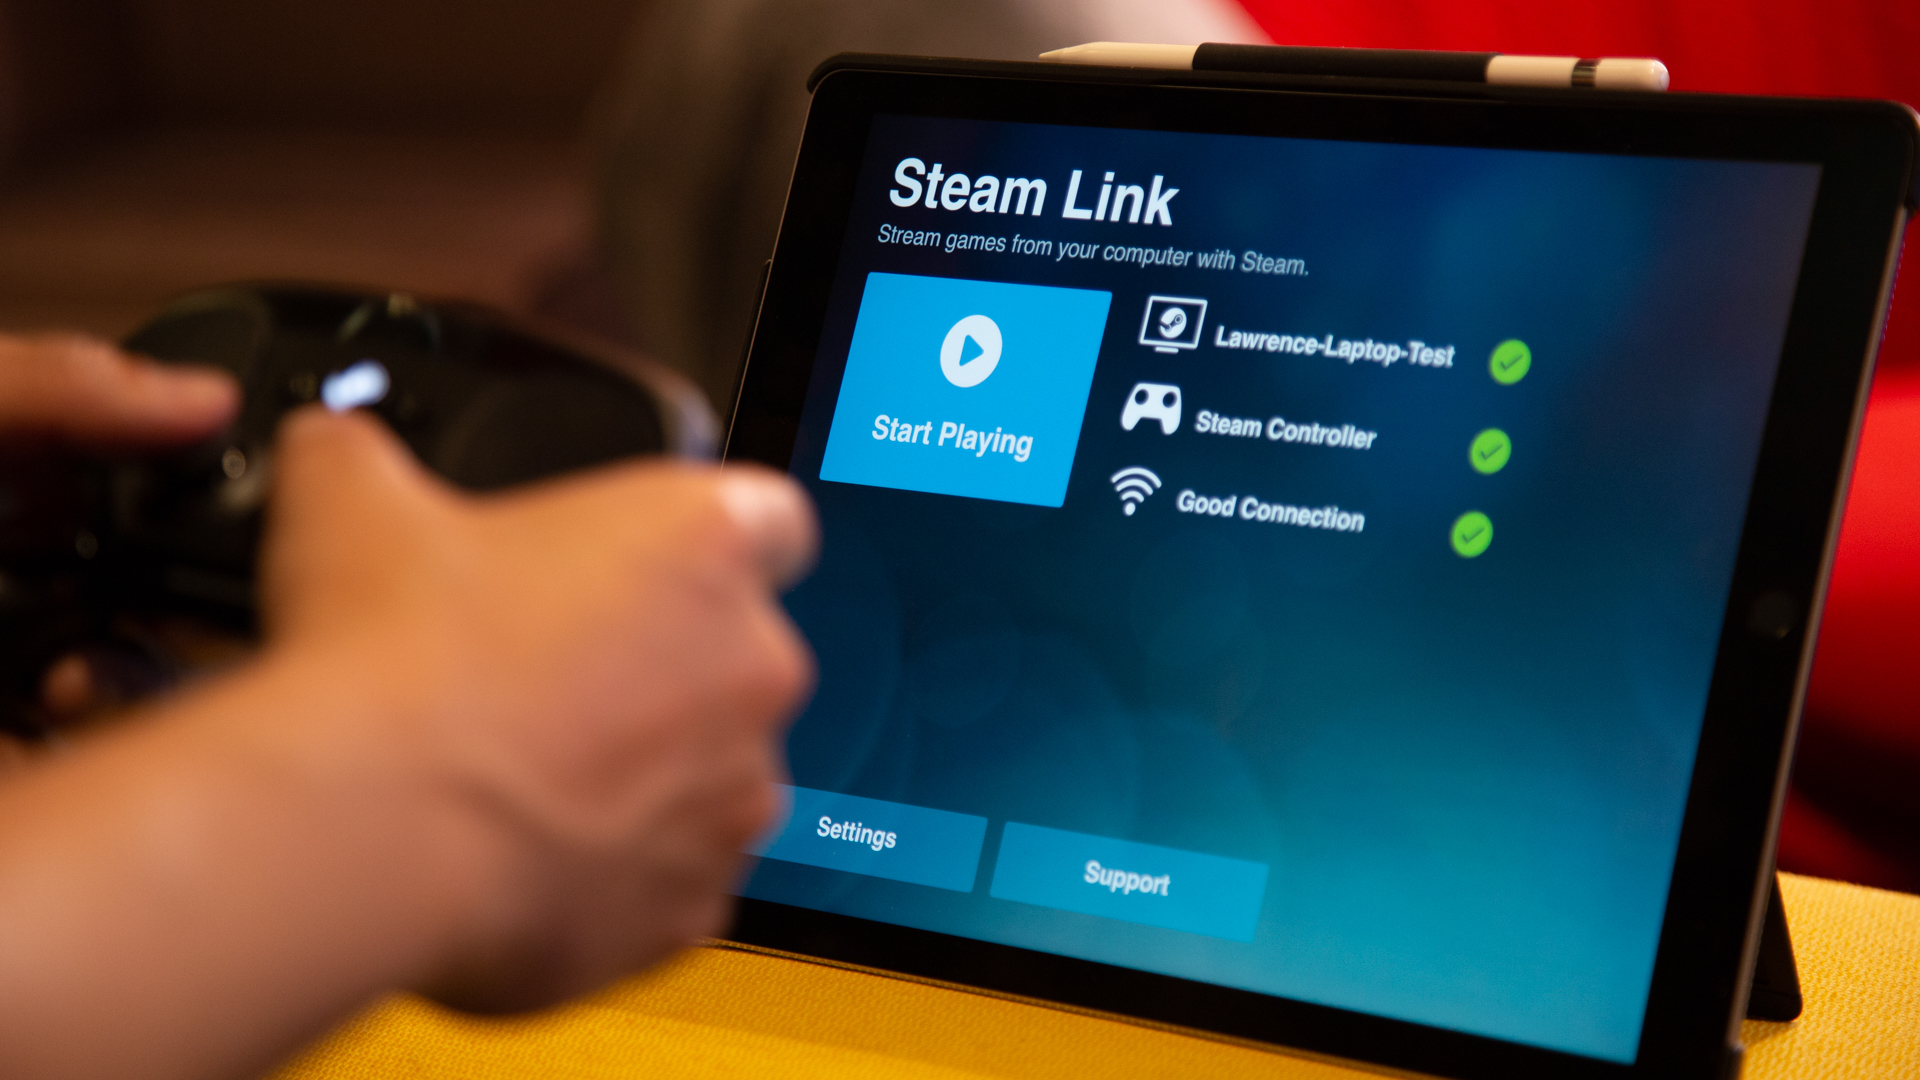 Steam Link on Steam